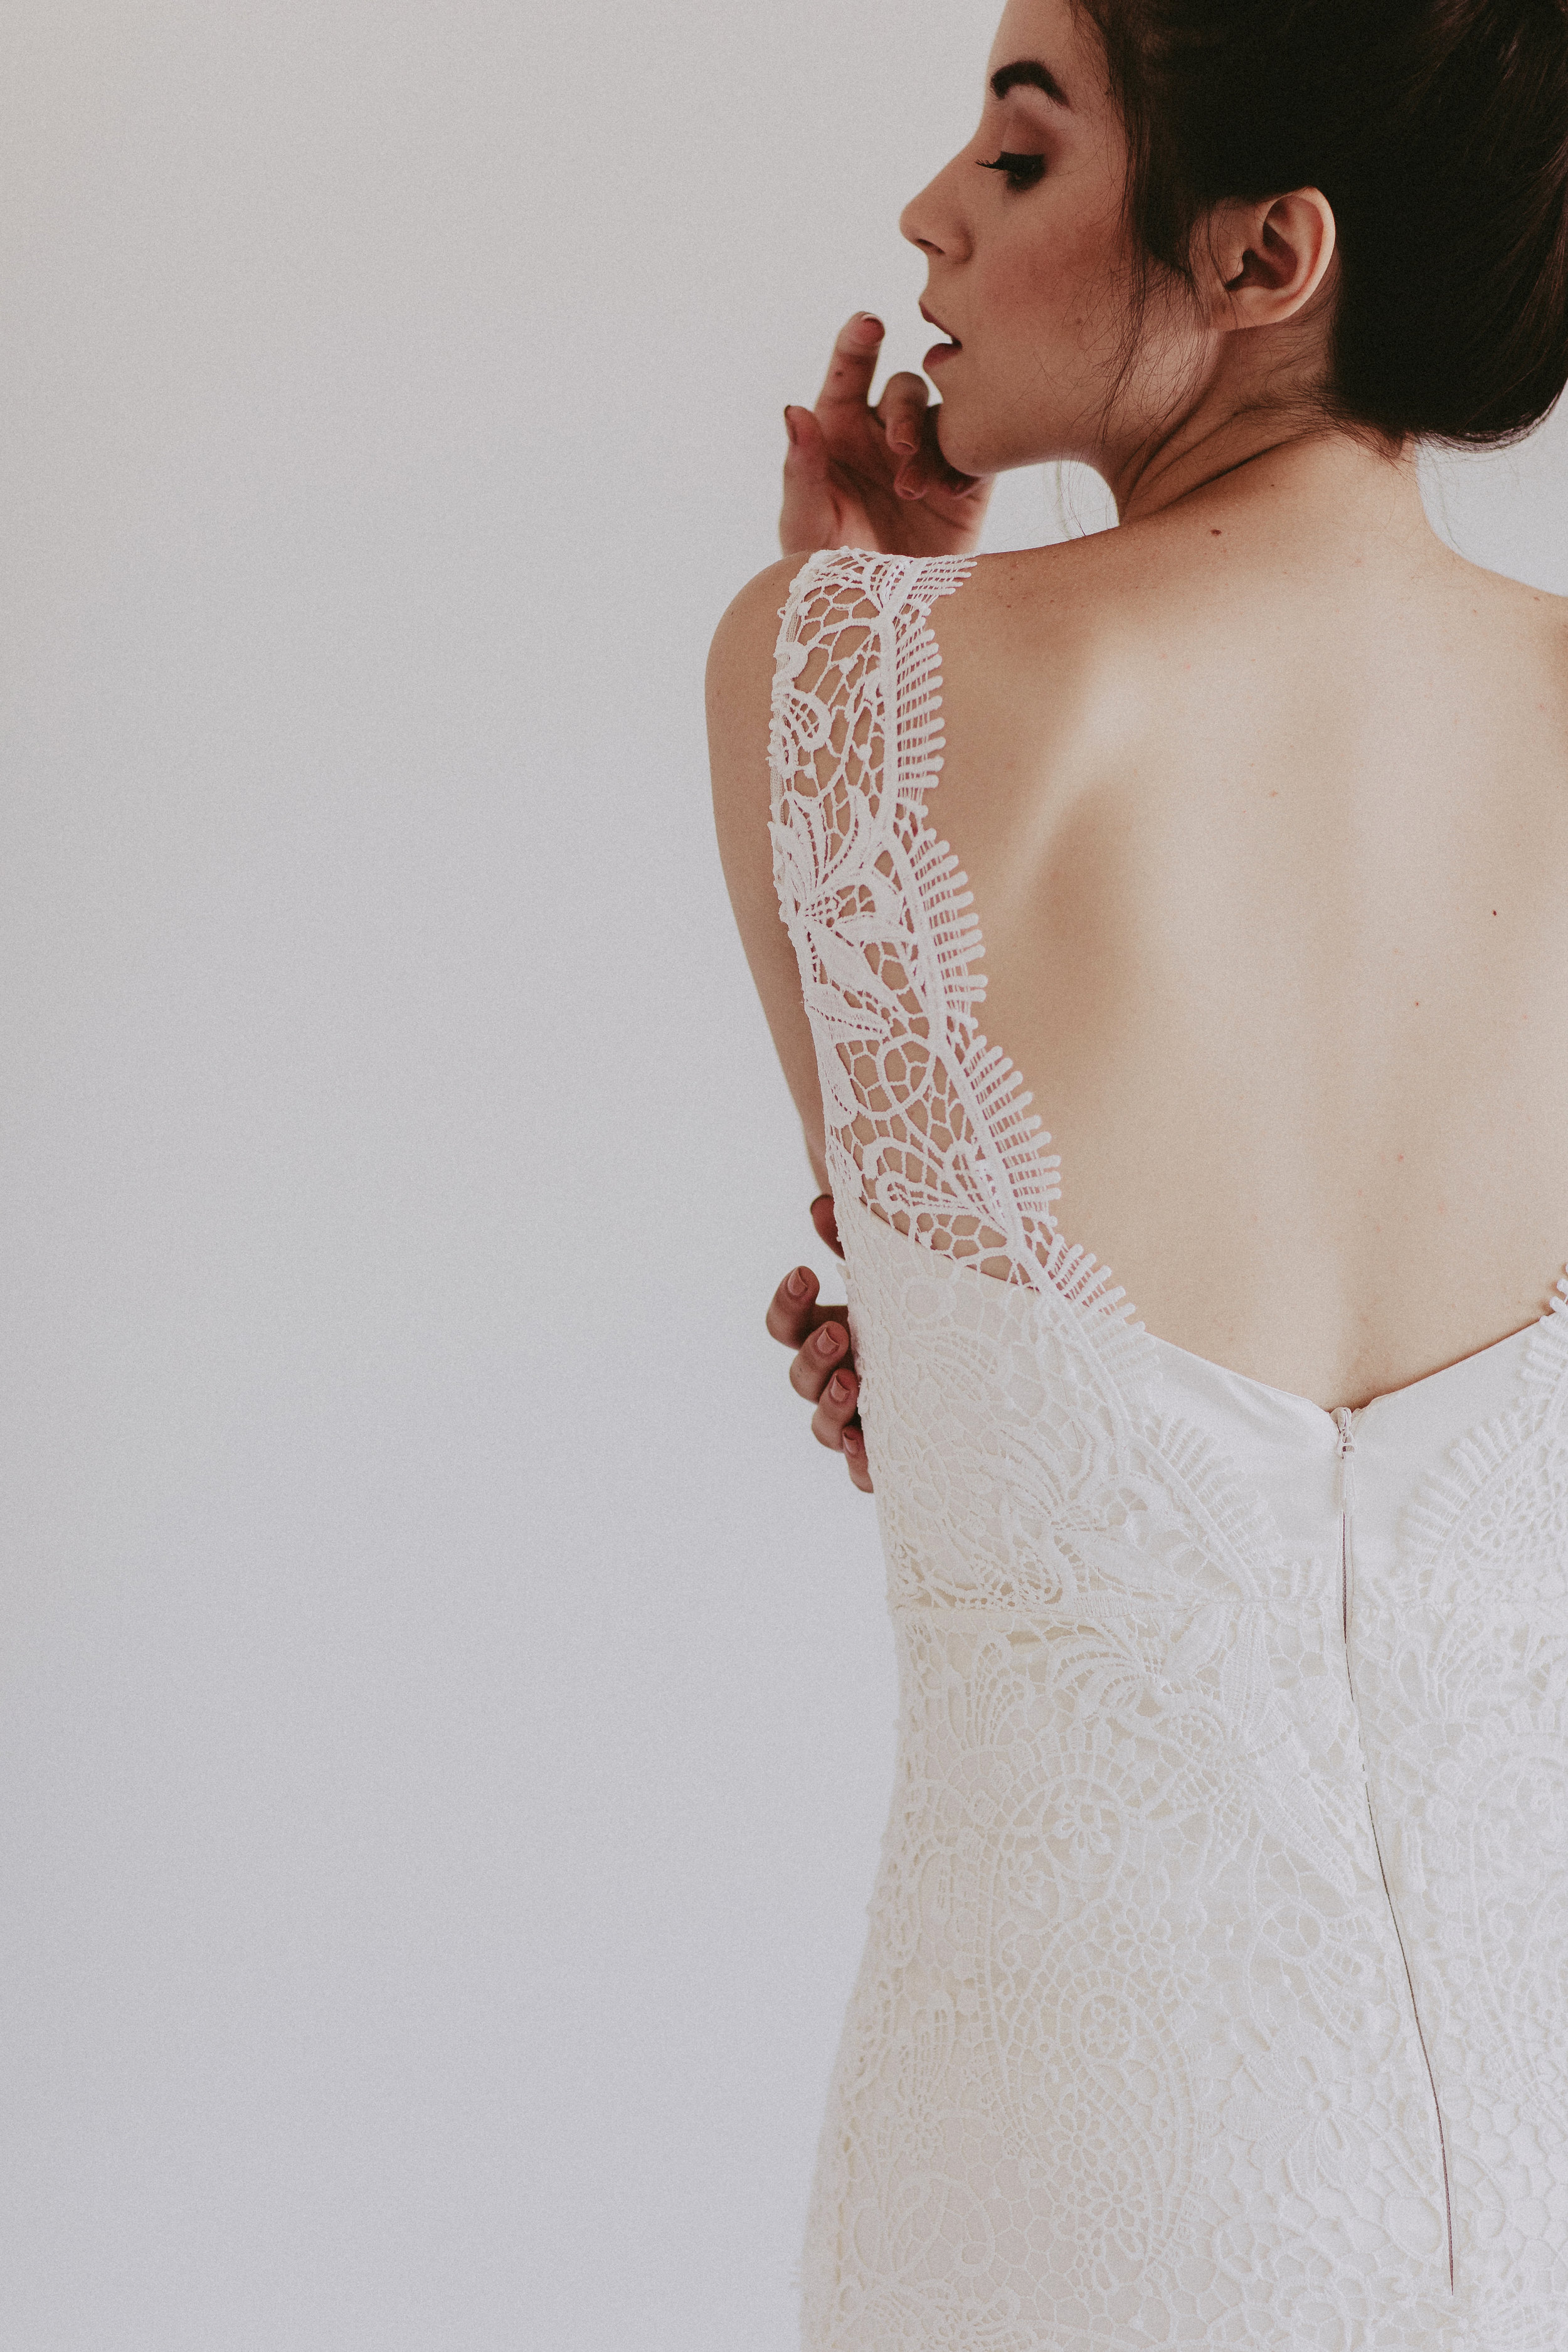 Emmylou by Chantel Lauren lace wedding gown